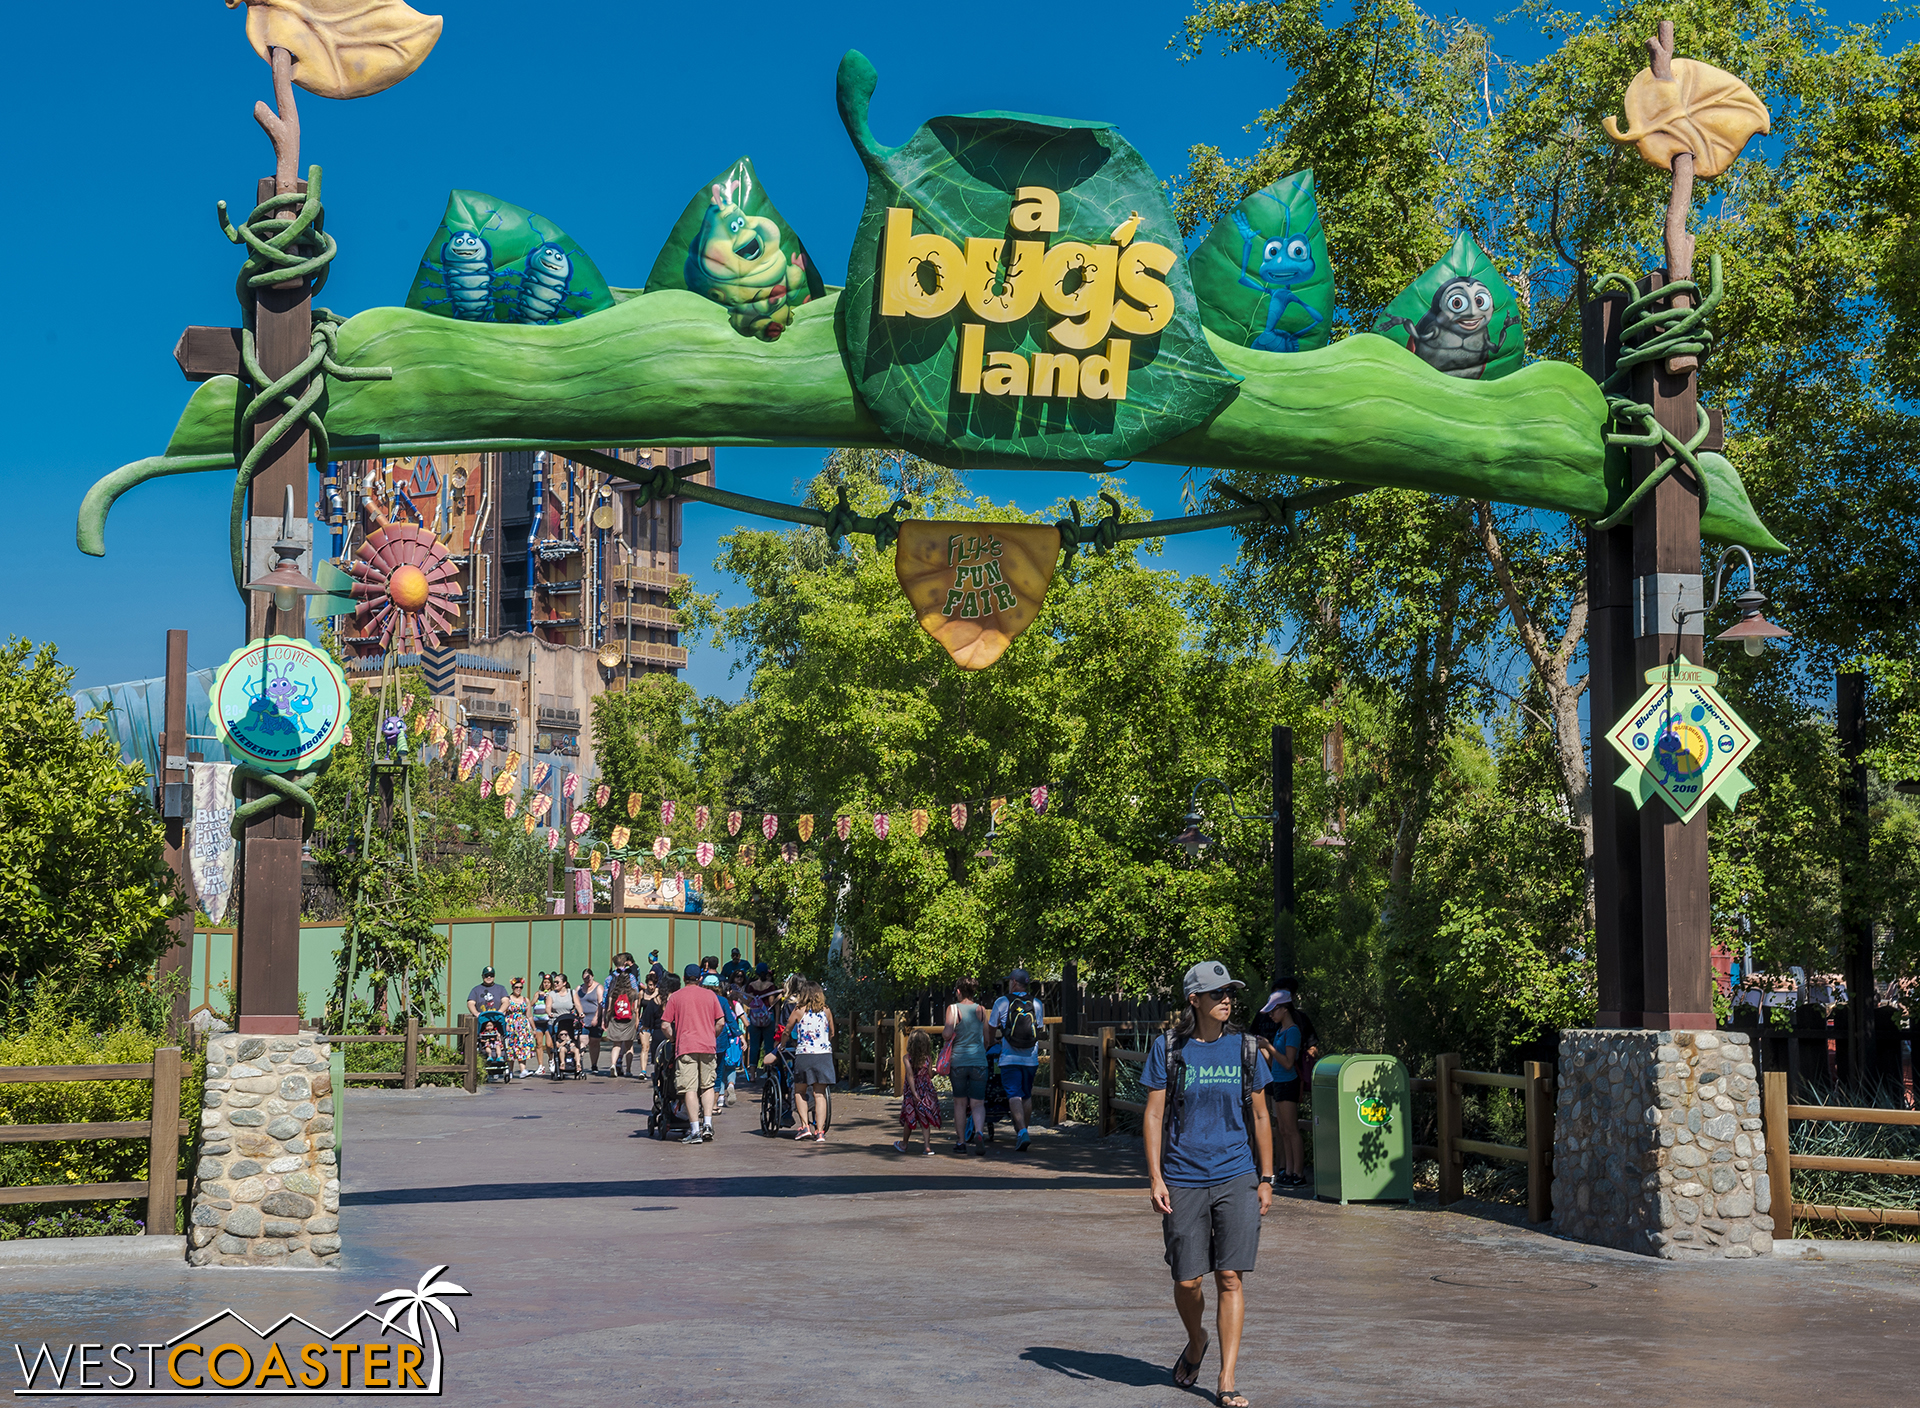 A Bug's Land  will close after September 4th .  You have until Labor Day weekend to enjoy it.  And by you, I mean your kids dragging you to one of the few places in DCA with rides oriented to young children.